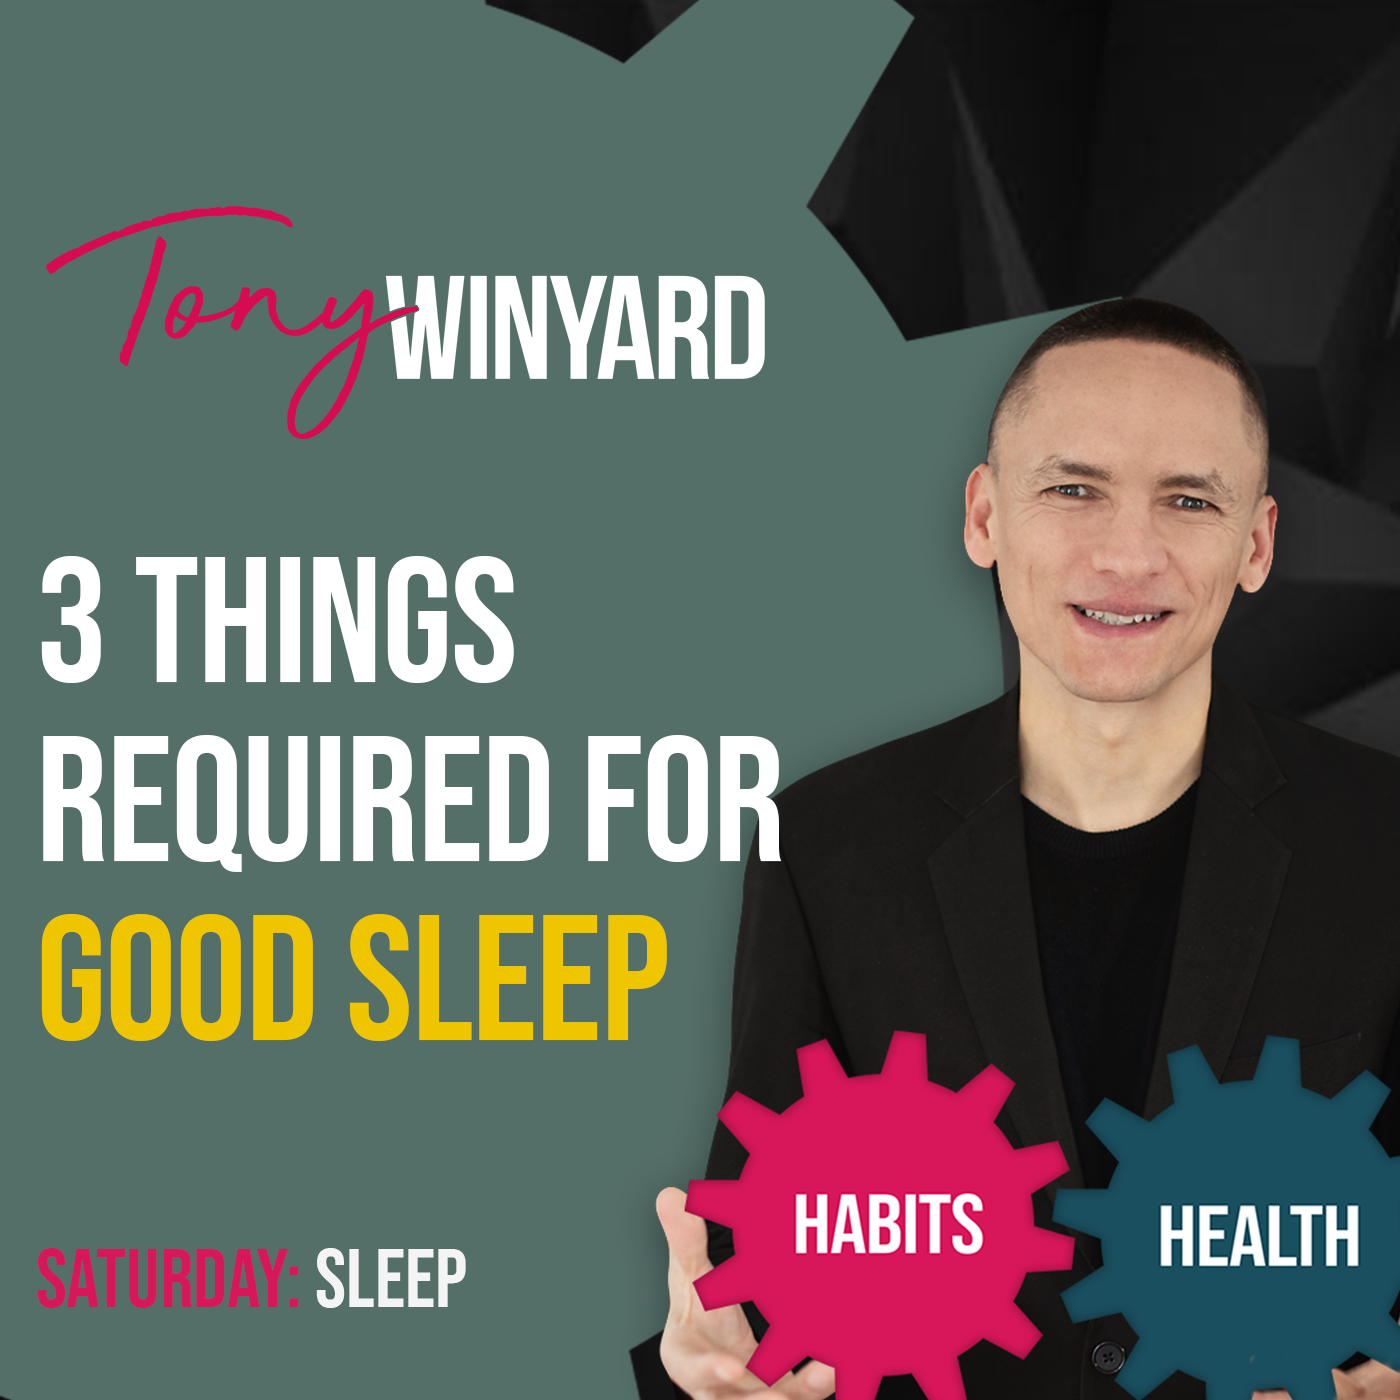 3 things required for good sleep